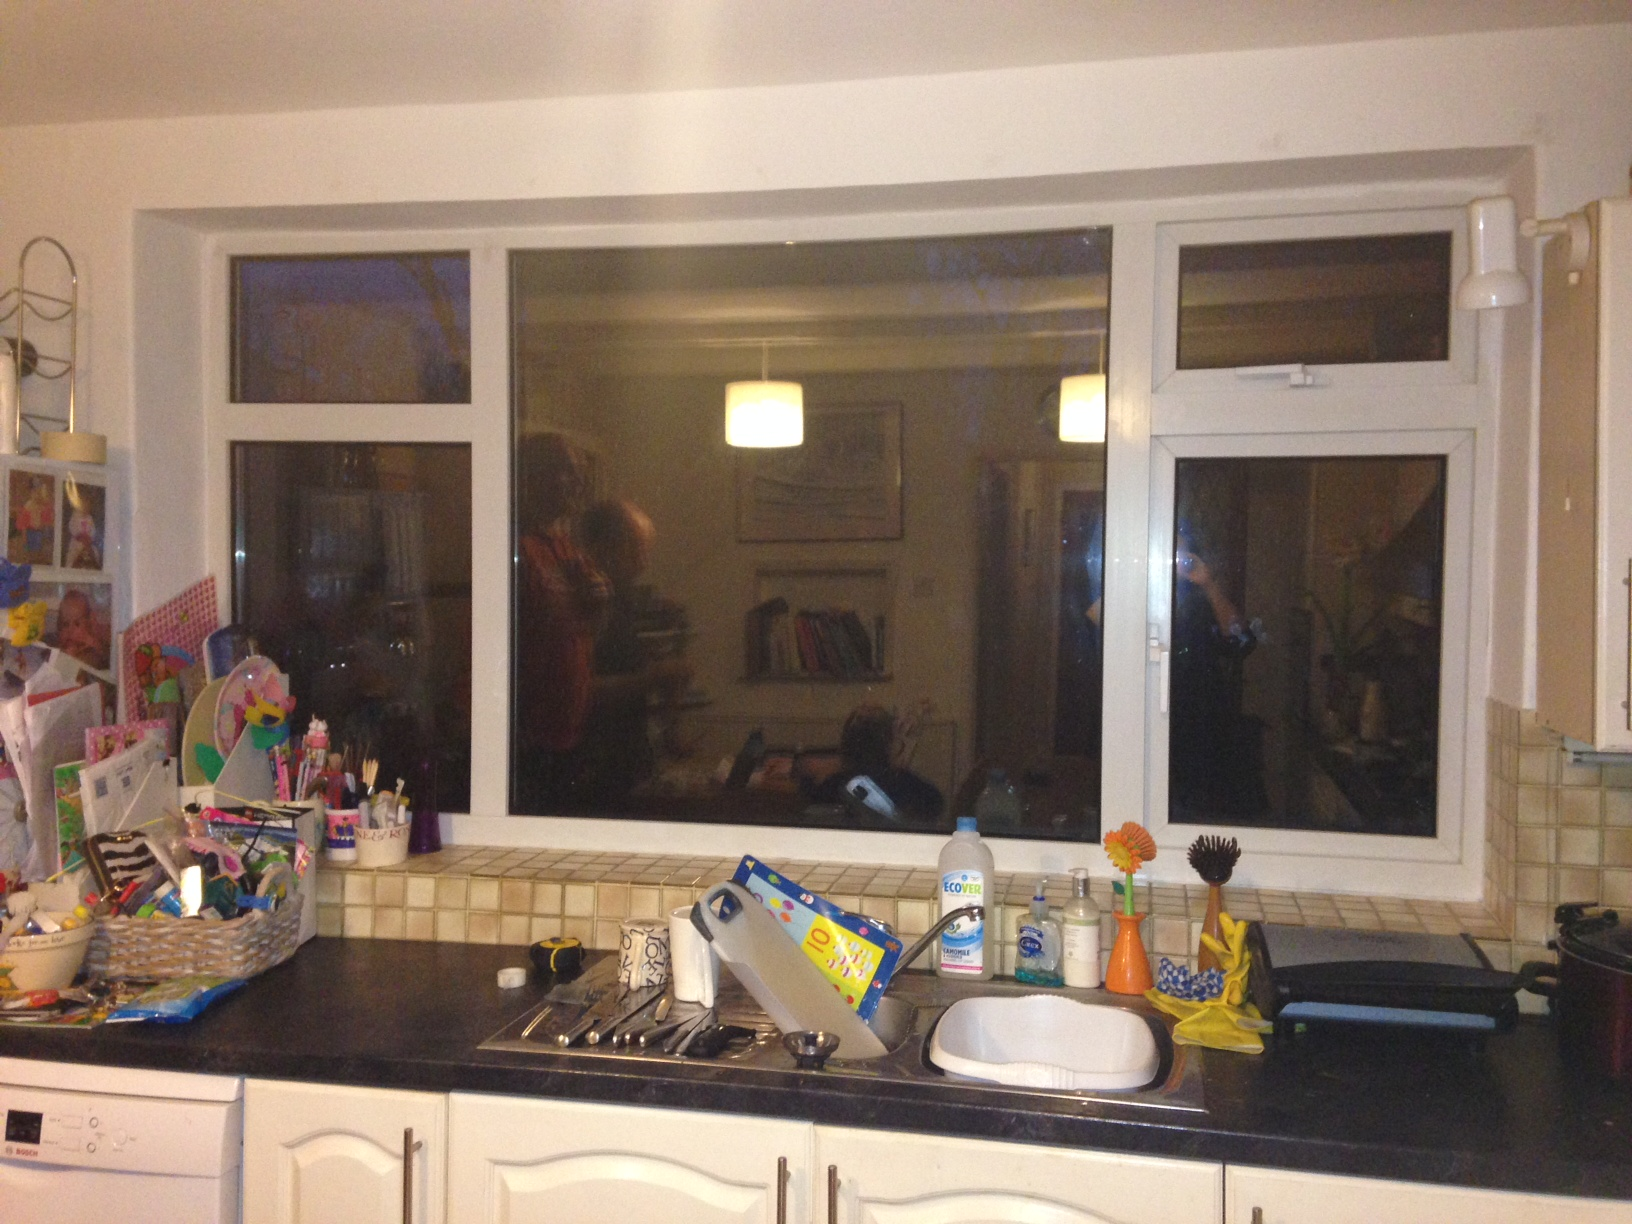 Before:  The Kitchen Window